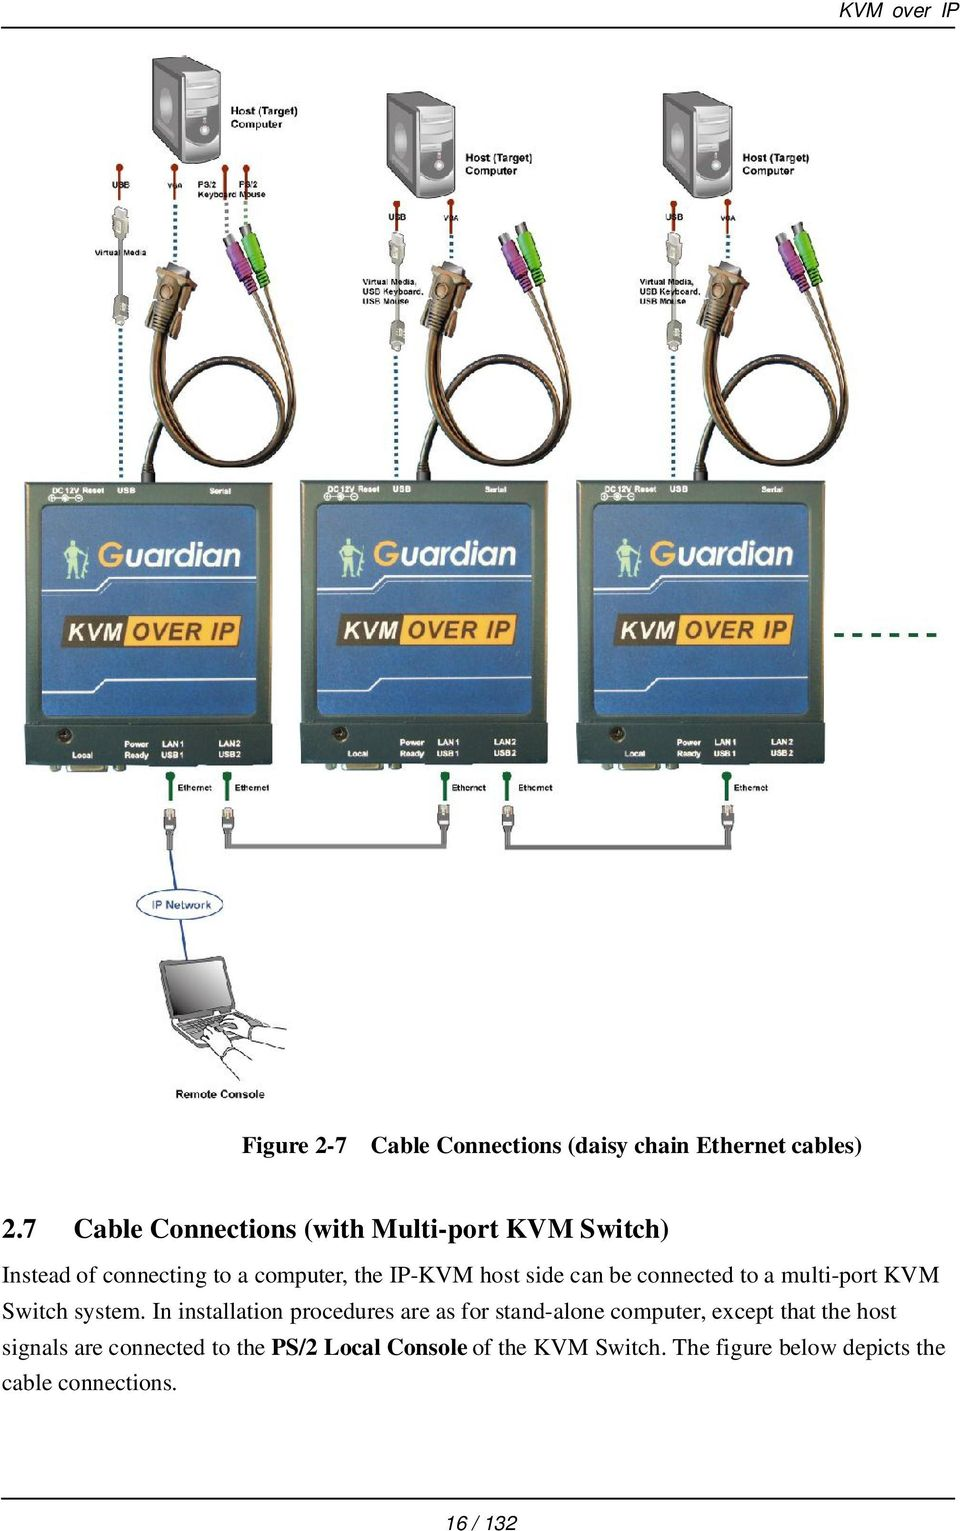 Kvm Over Ip Ipk 101 Dongle User Manual Pdf Multi Computer Ethernet Connection Diagram Side Can Be Connected To A Port Switch System